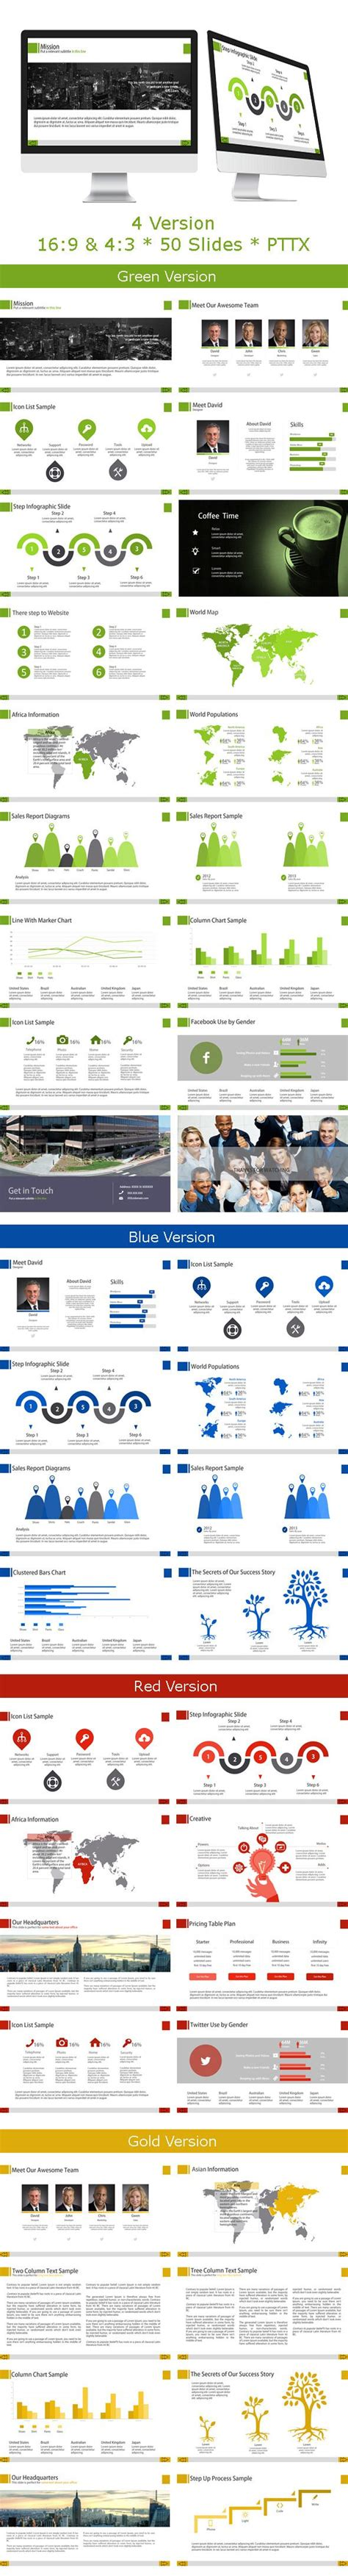 powerpoint template by design district via behance 193 best images about presentation design on pinterest